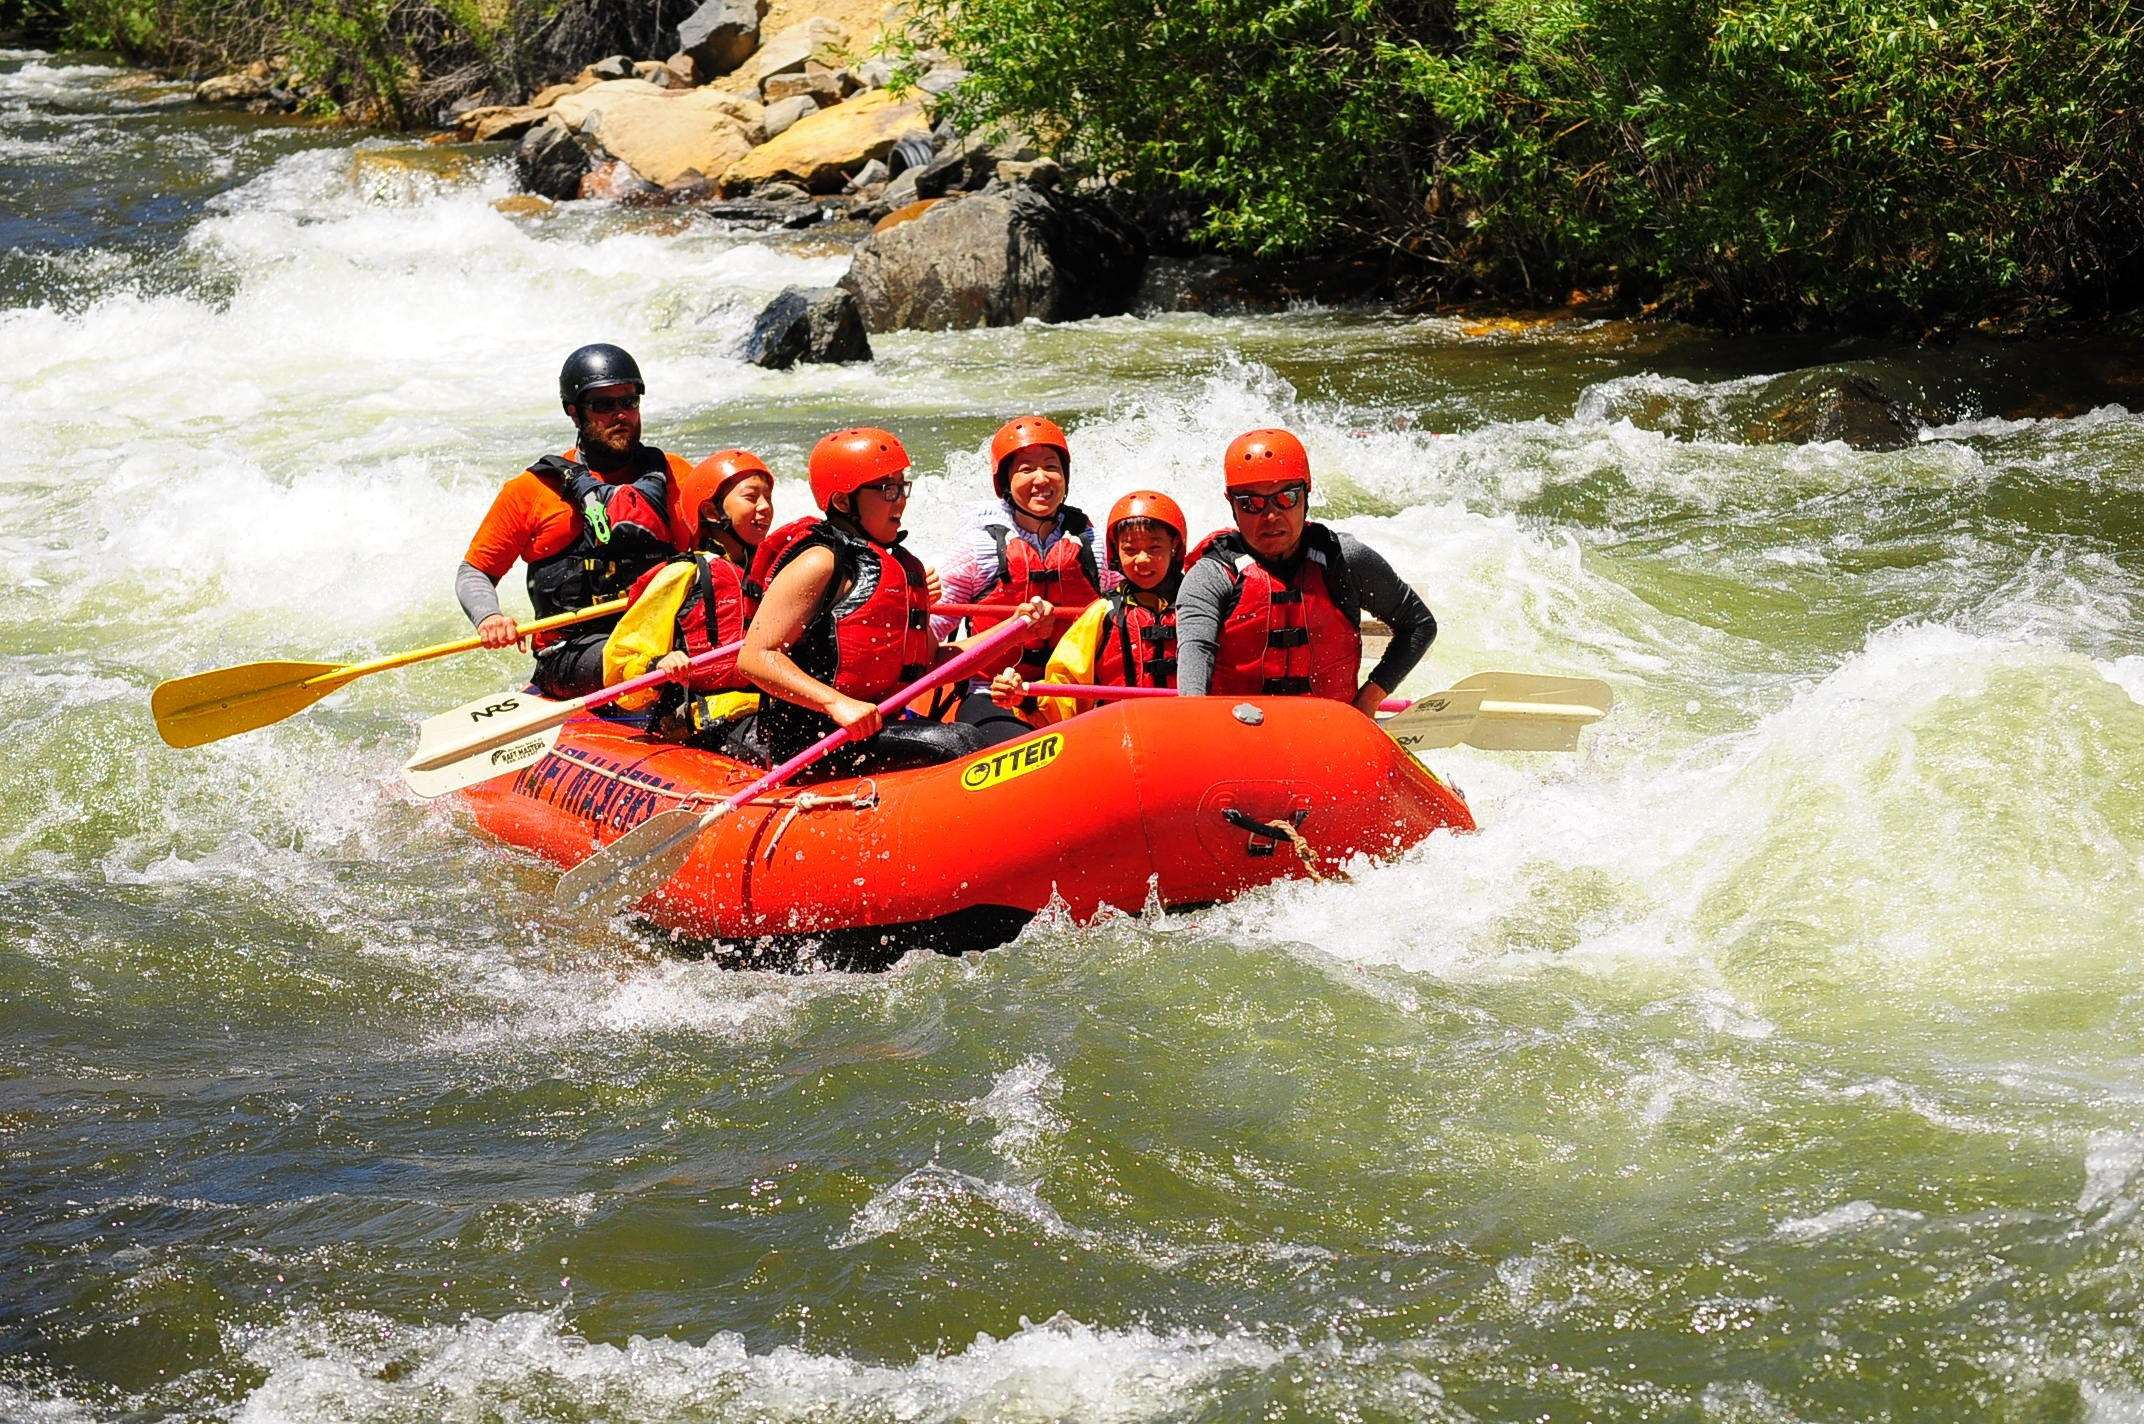 Raft with 5 guests and a guide going through rapids on Clear Creek Raft Masters Tours Colorado